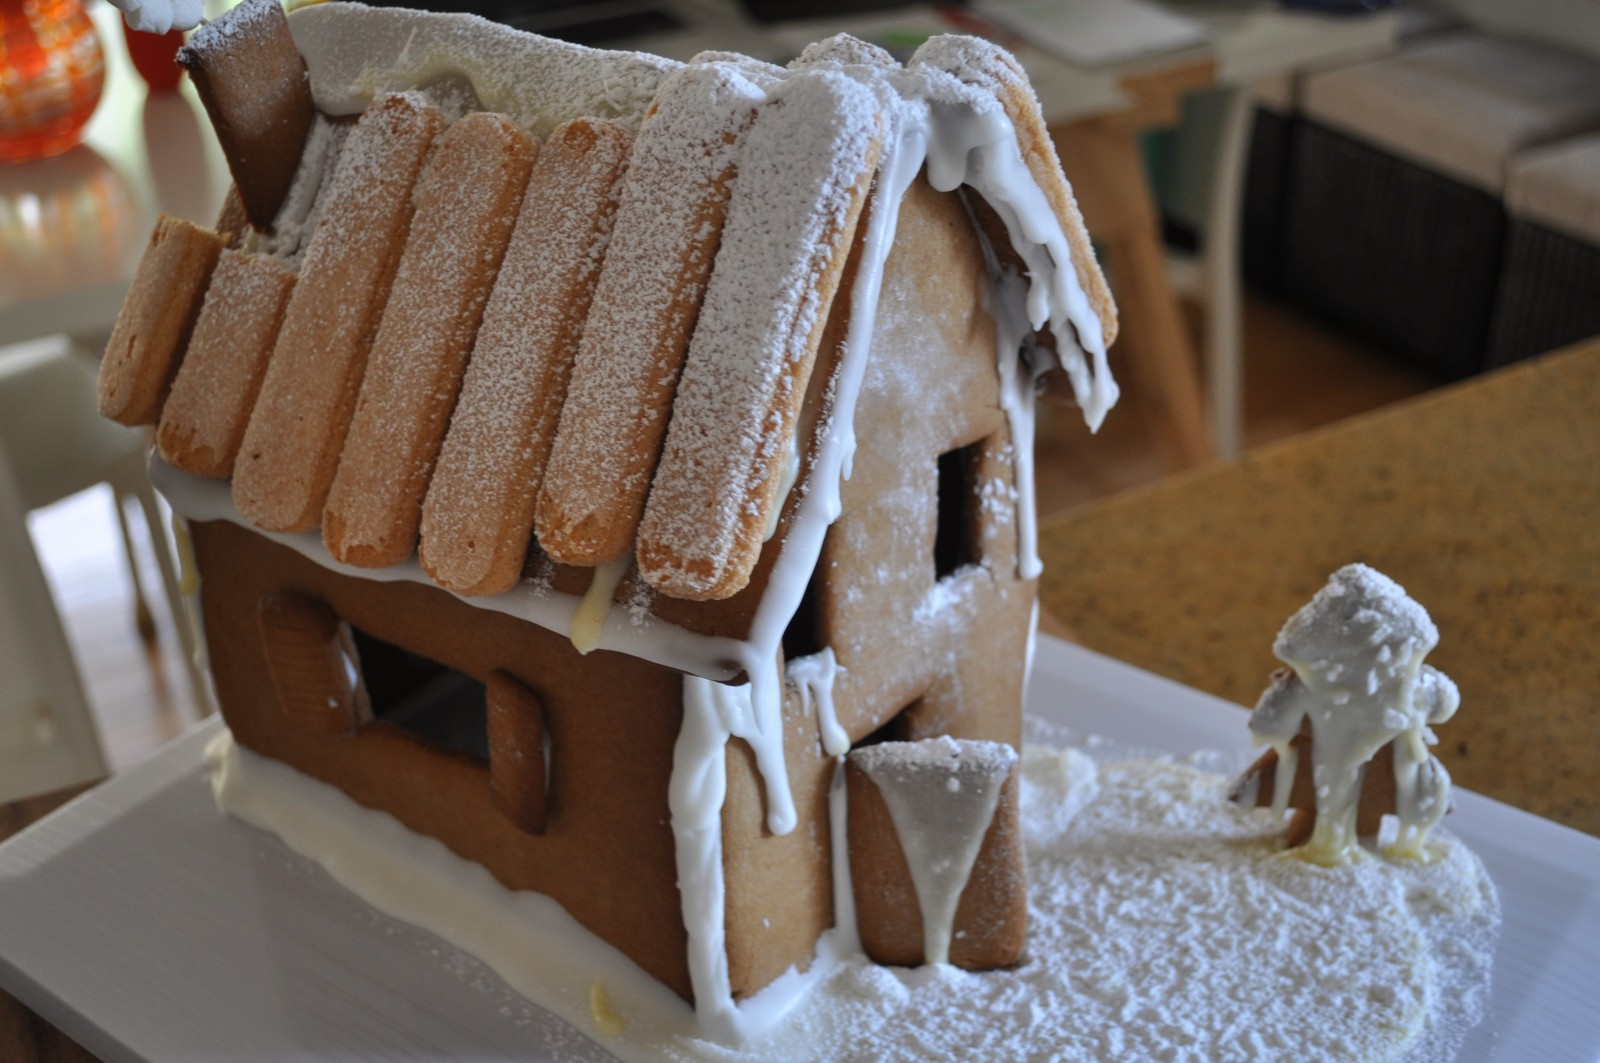 Gingerbread house building – Sweet adventures blog hop